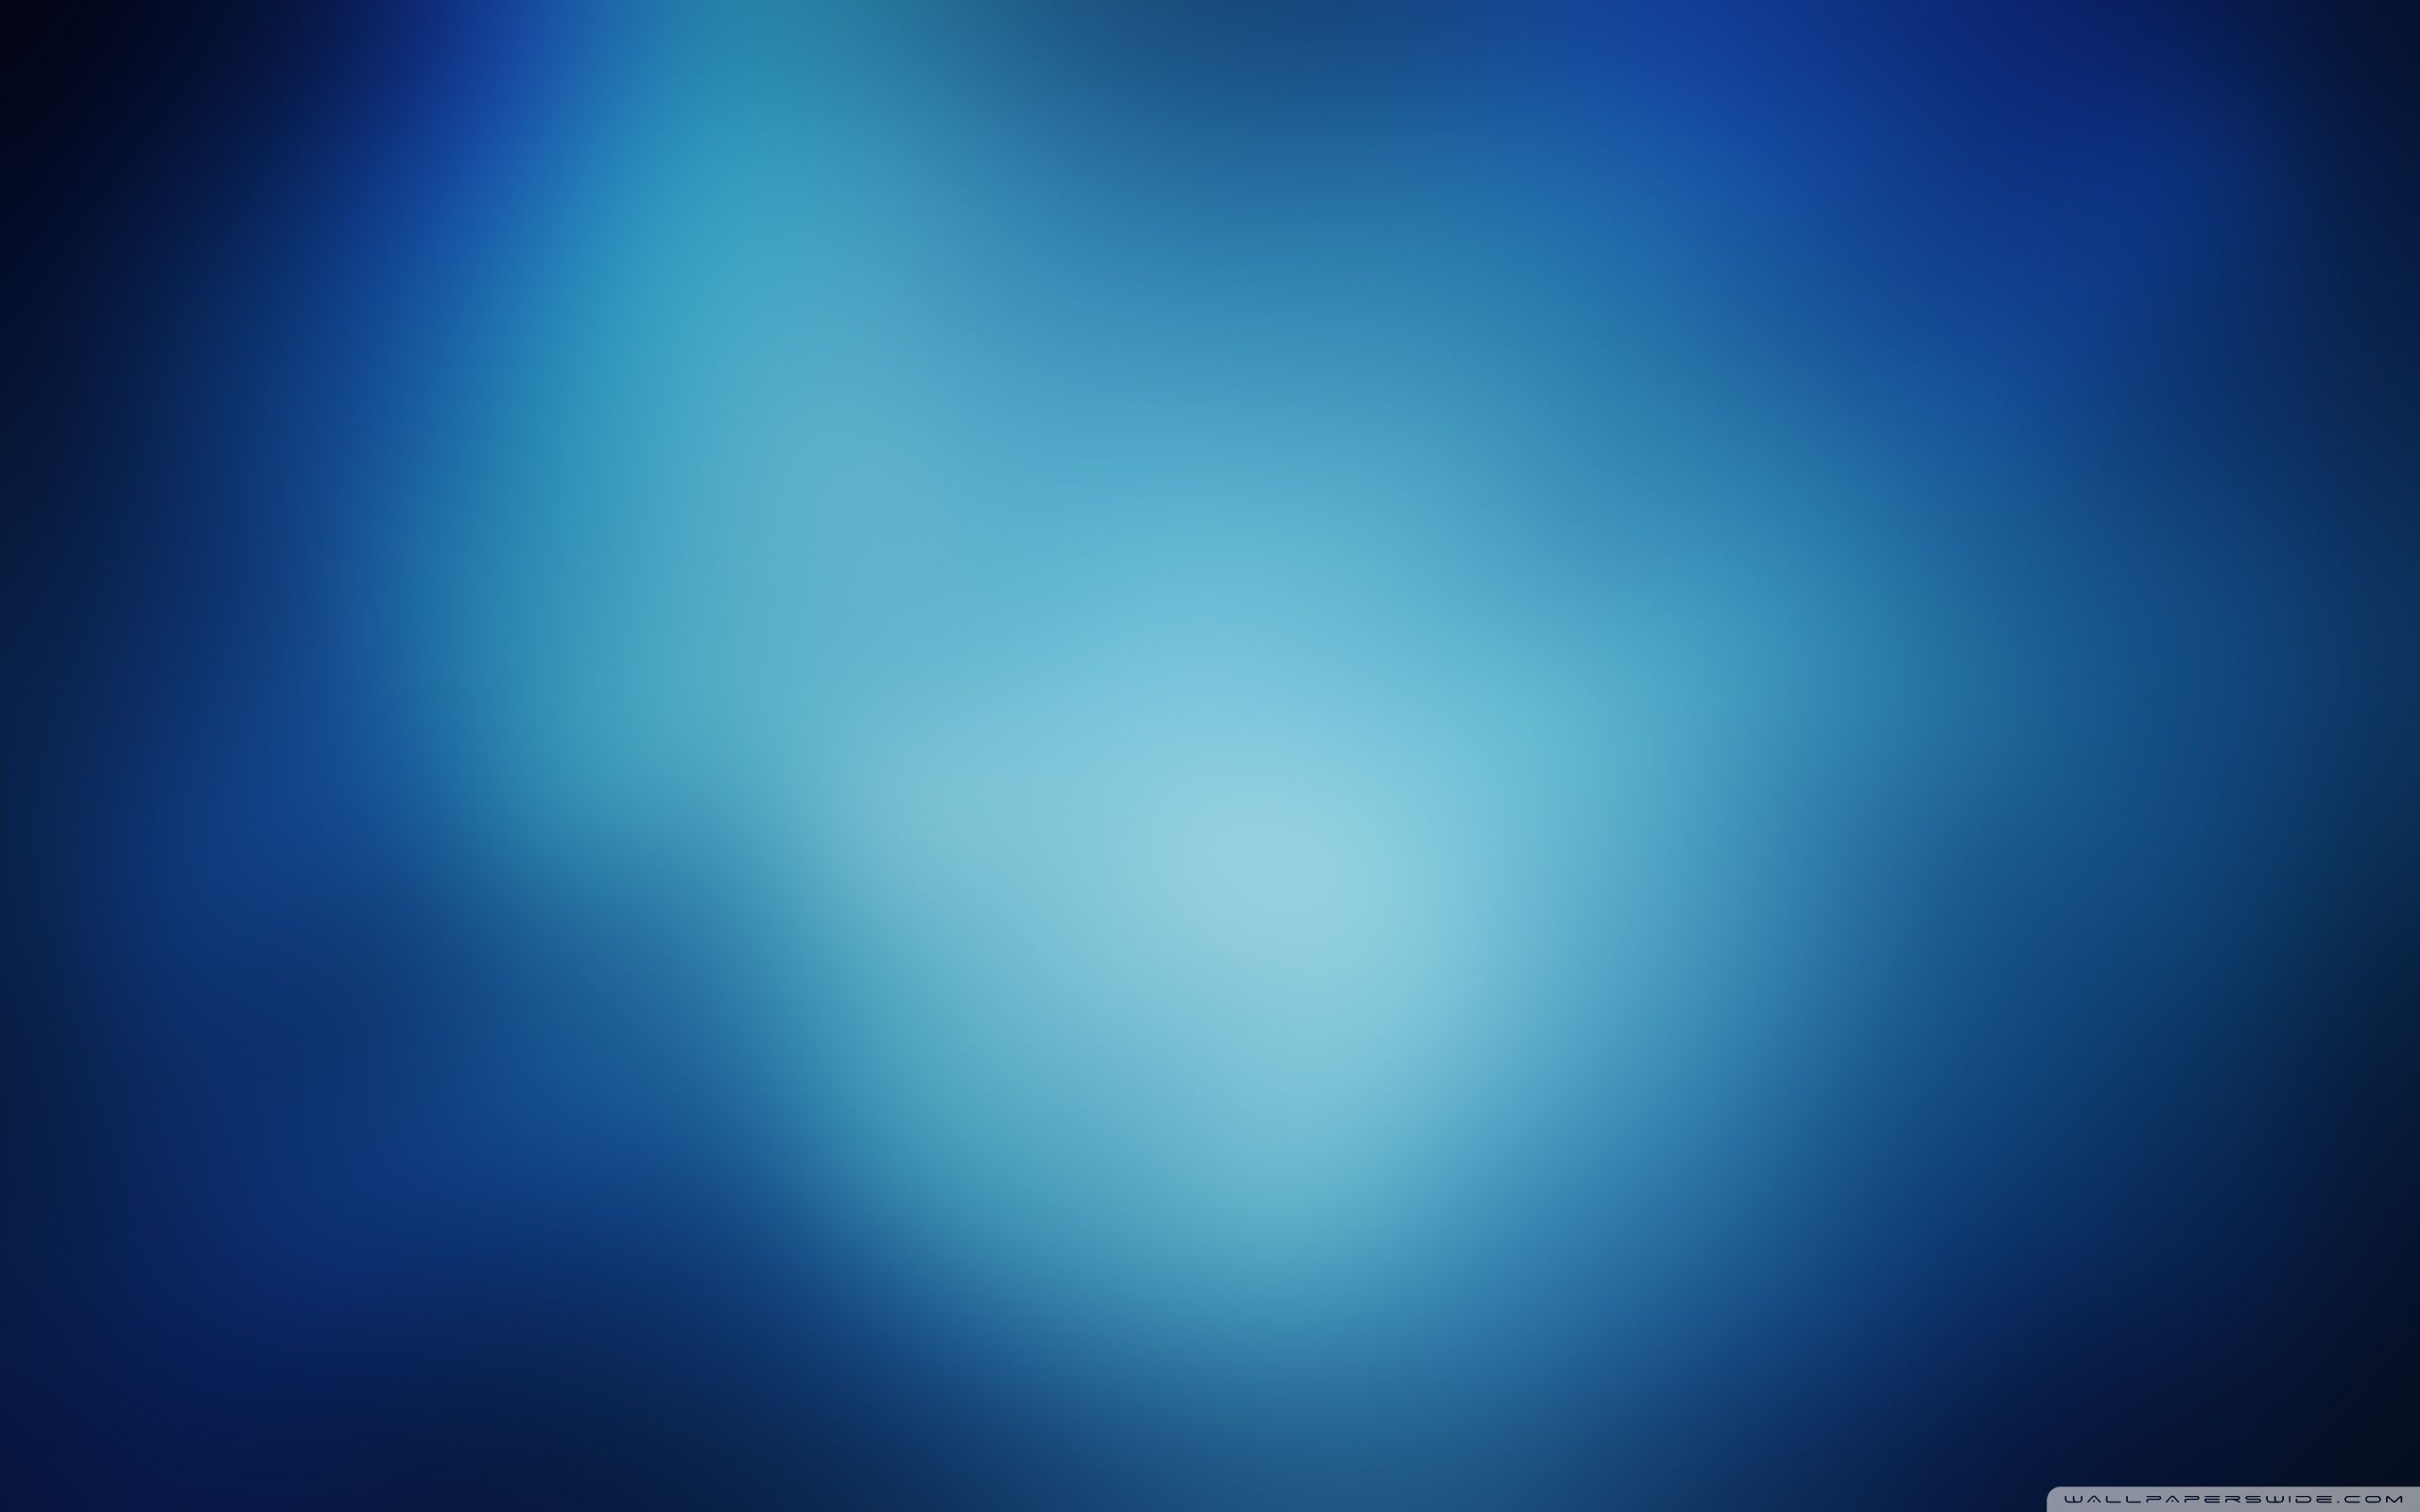 cool Blue Gradient Background Computer Wallpaper in 2019 2560x1600